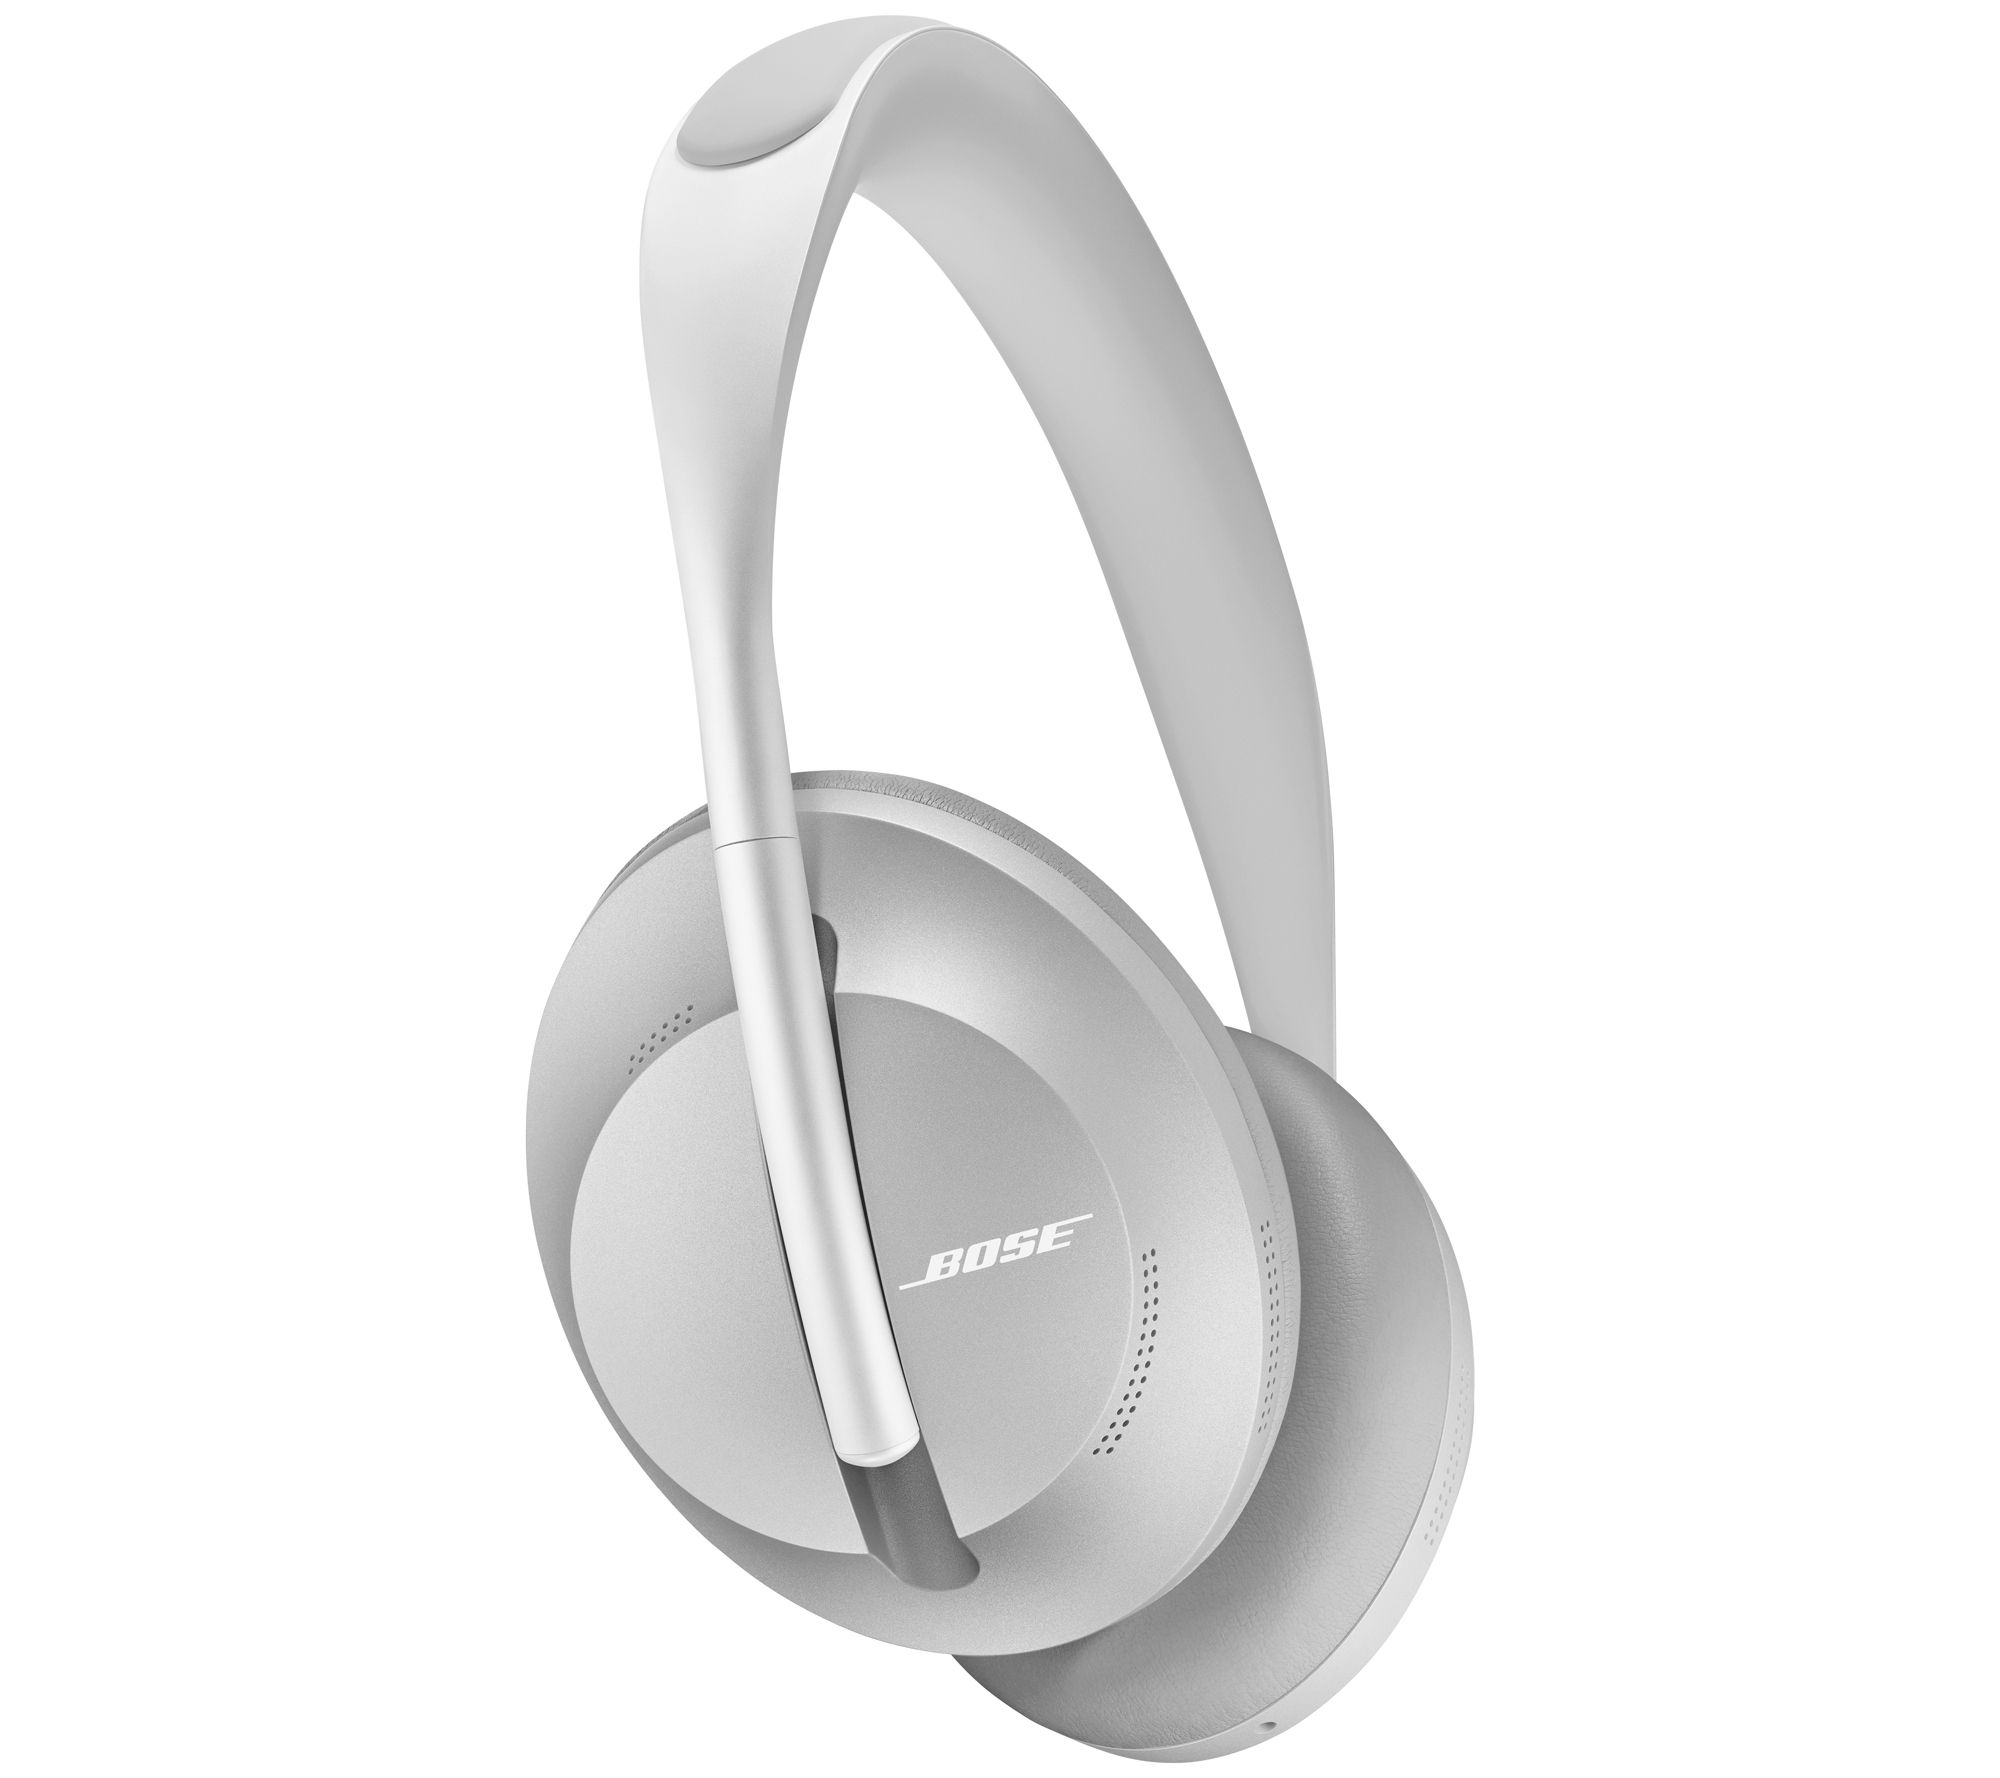 Bose Noise Cancelling Wireless Headphones 700 Qvc Com